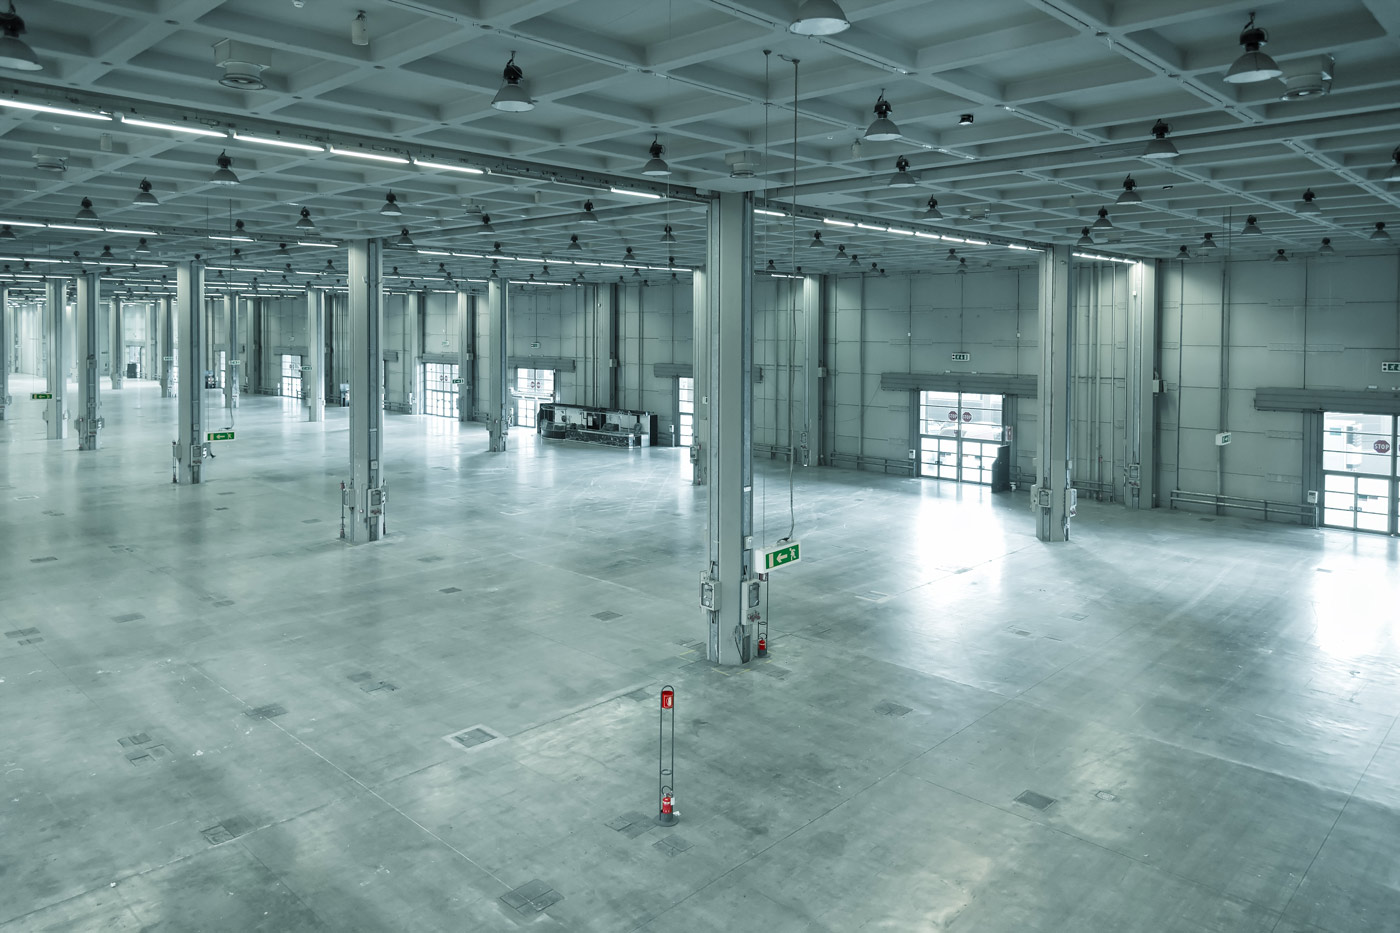 3D Scan as built designs in an empty factory warehouse